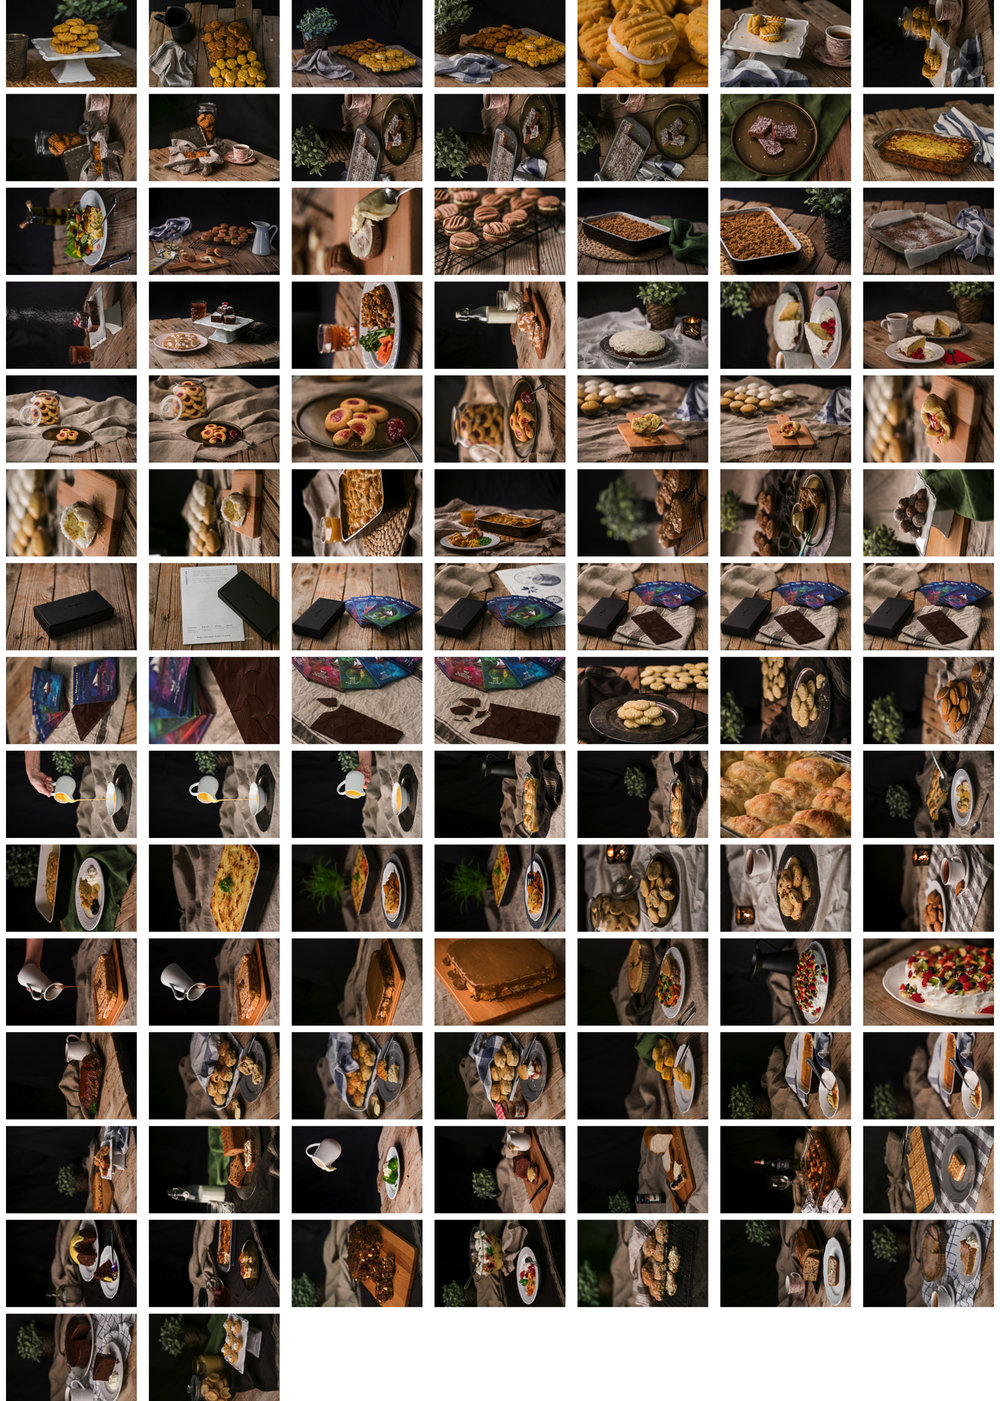 A sample contact sheet of some of the photographs used in the cookbook.